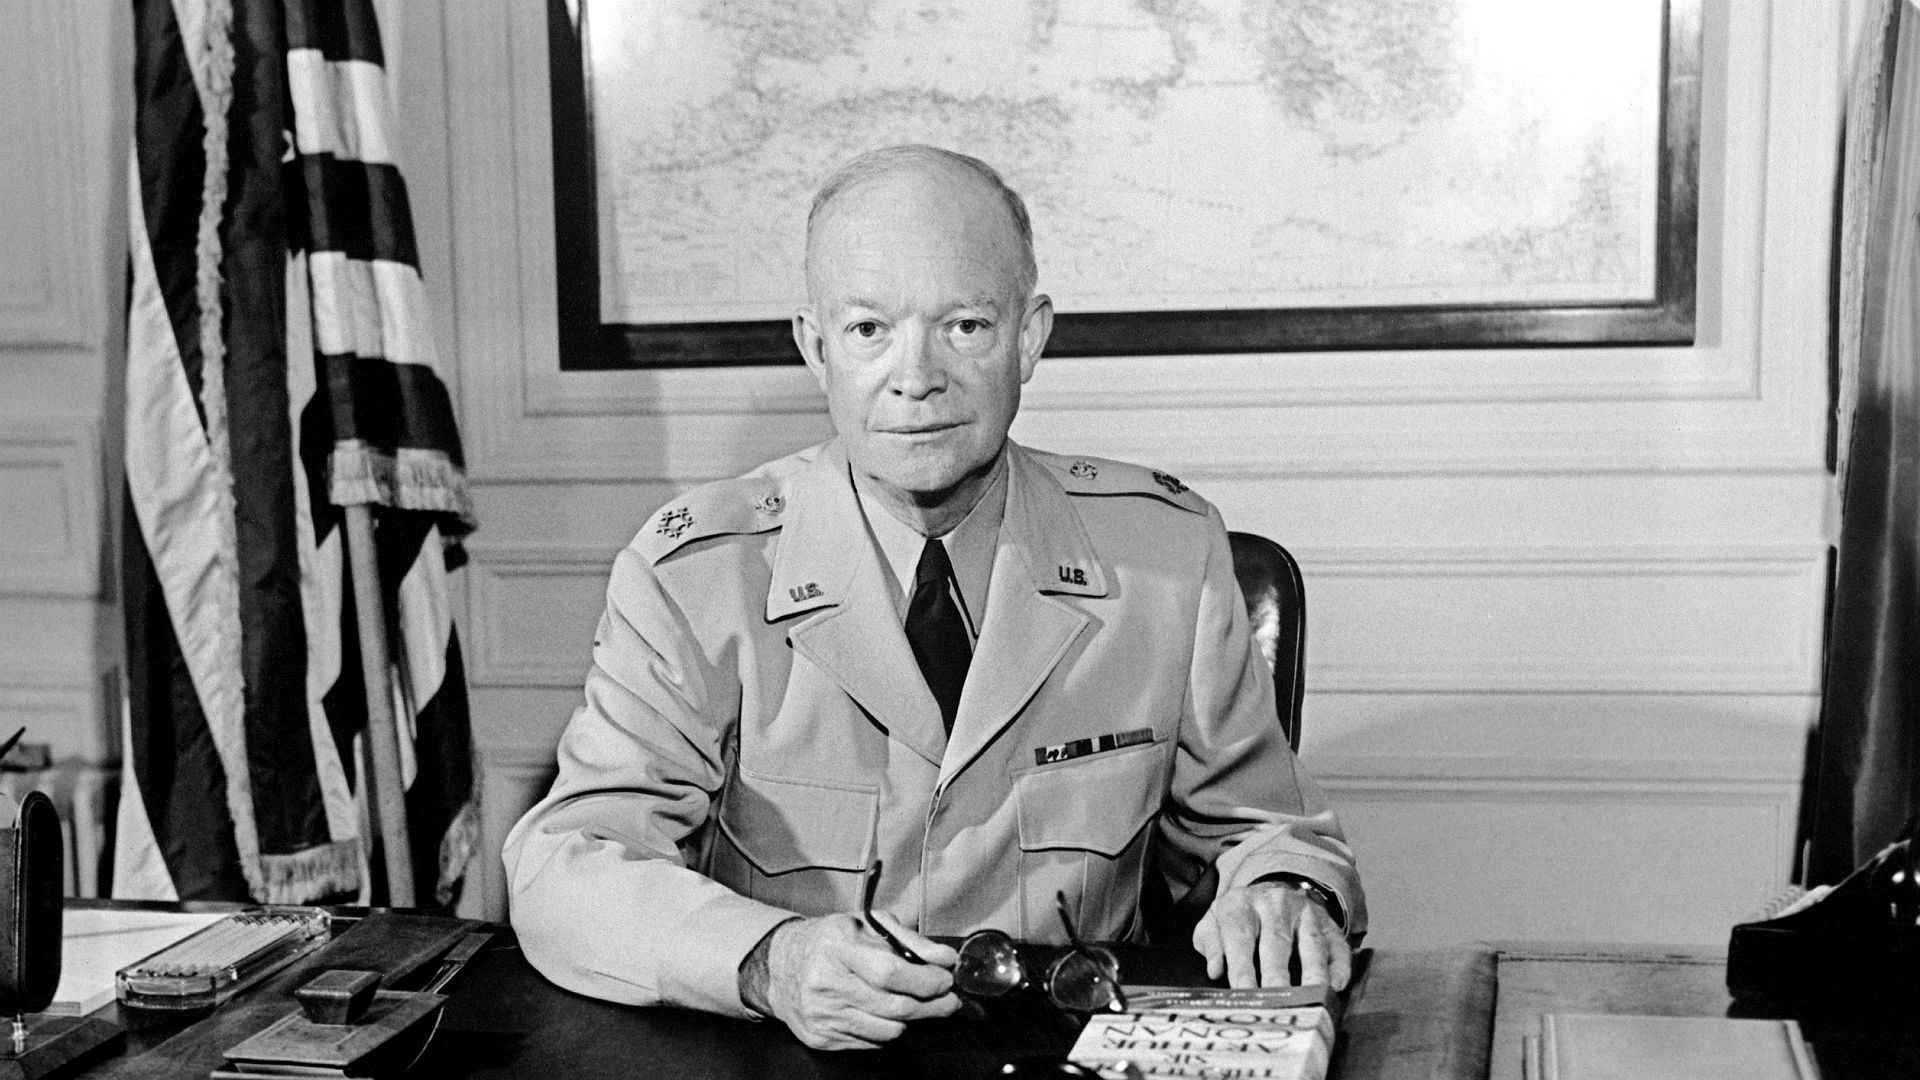 eisenhower-dwight022815-getty-ftr.jpg